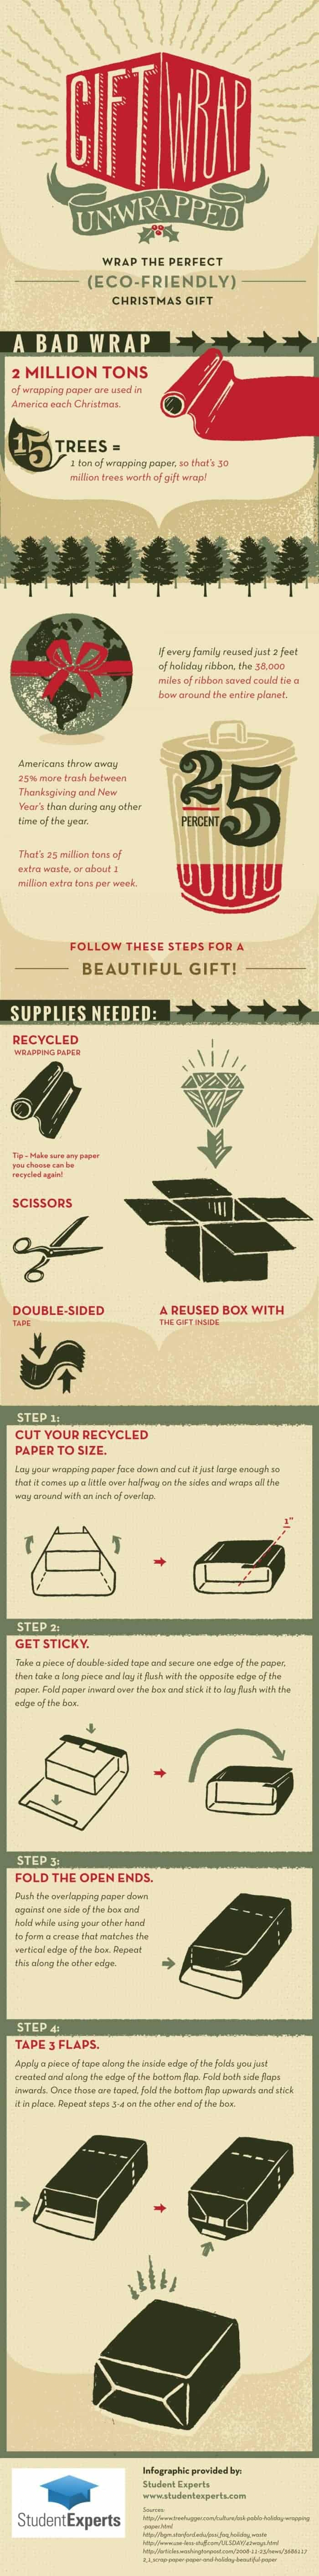 Gift Wrap Unwrapped Infographic